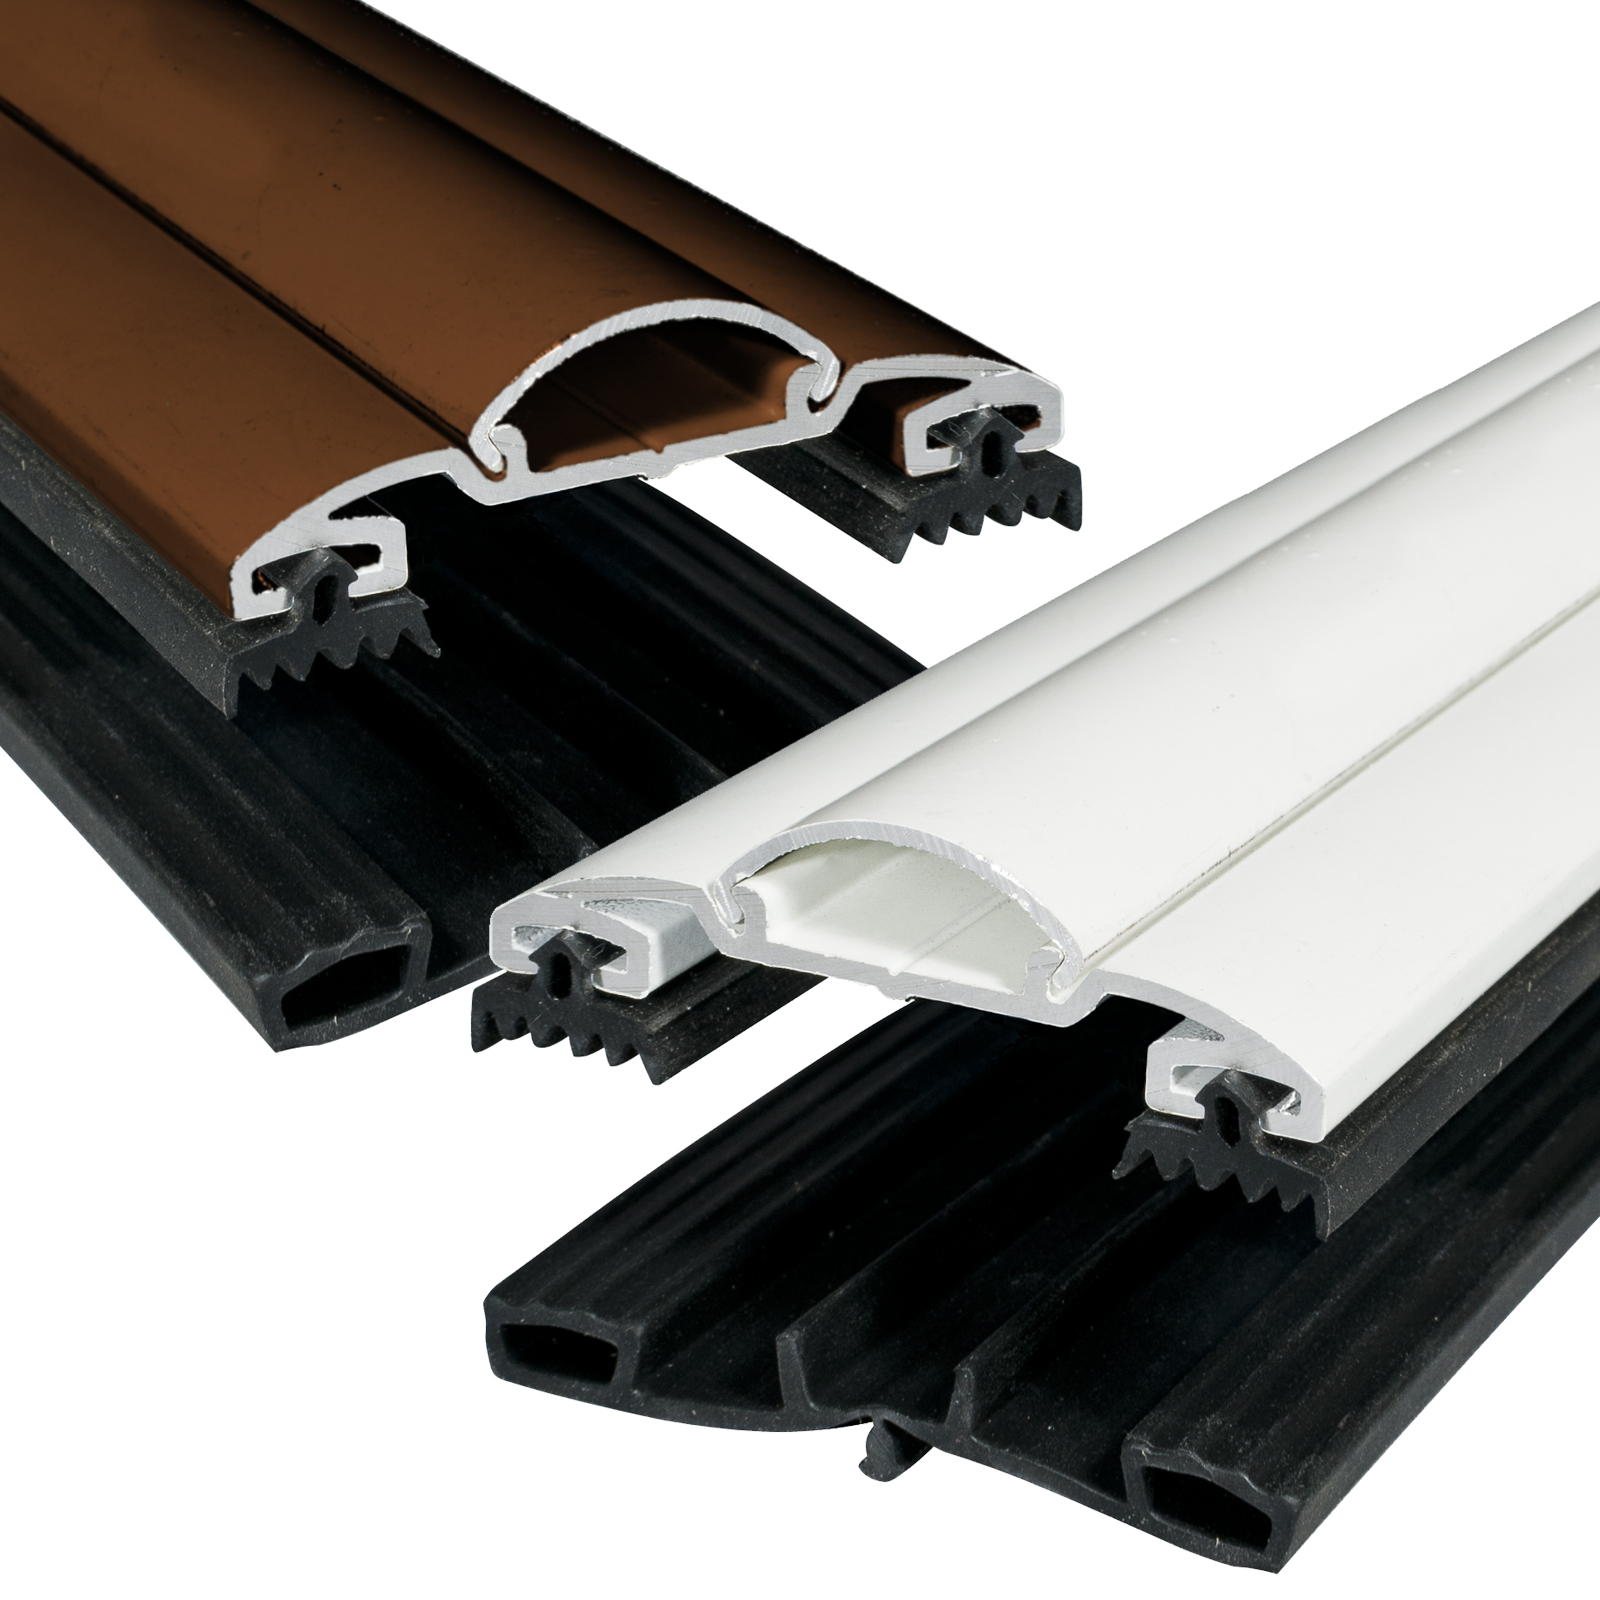 60mm Sunwood Screw Down Glazing Main Bar For Conservatory